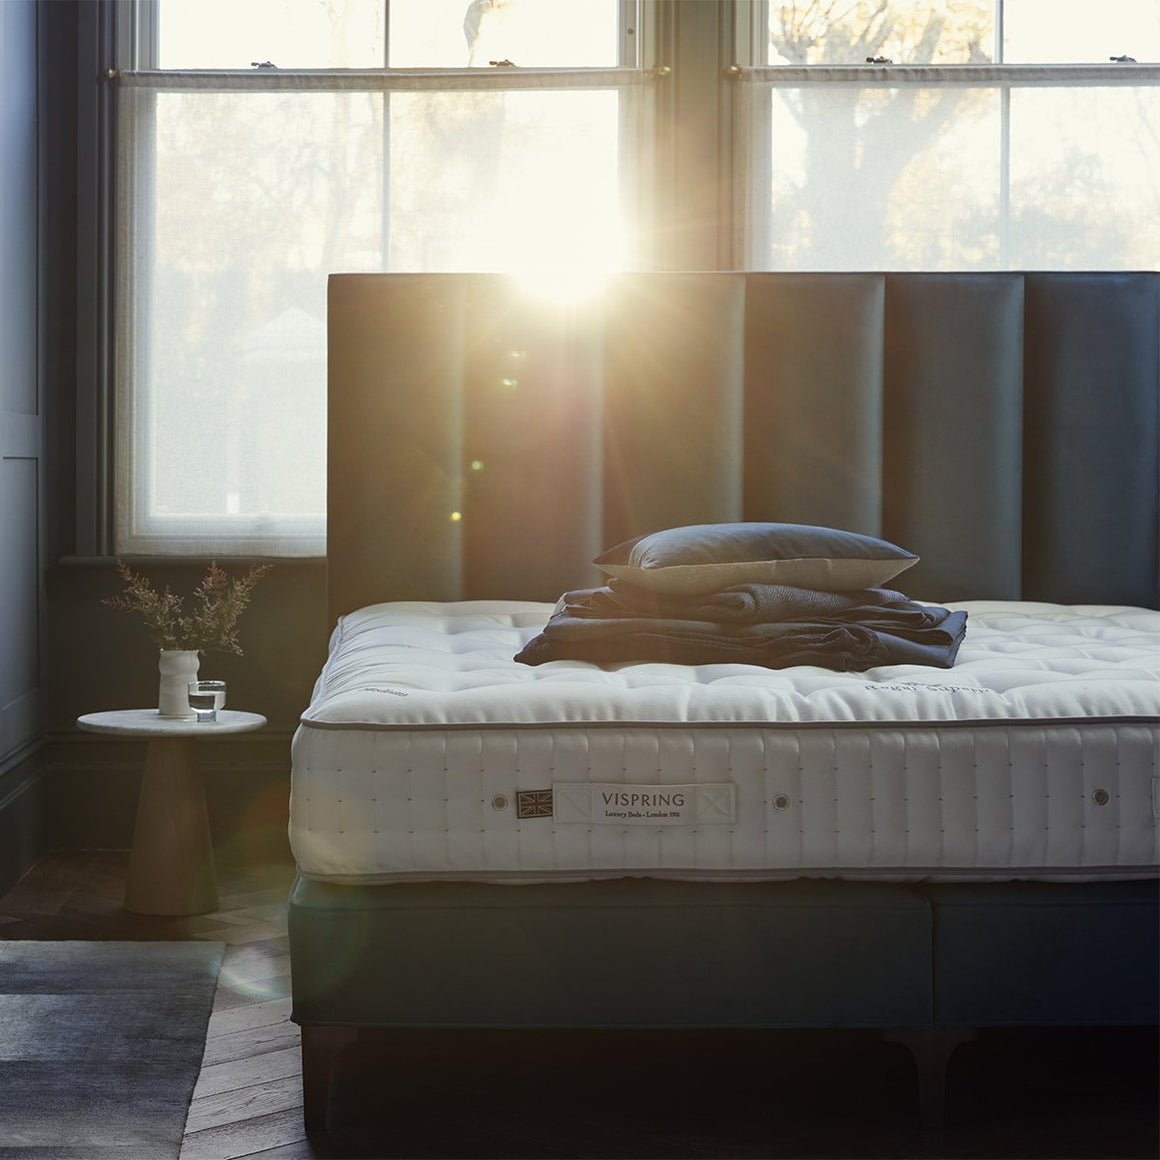 Vispring's Regal Superb mattress with Ceto headboard.